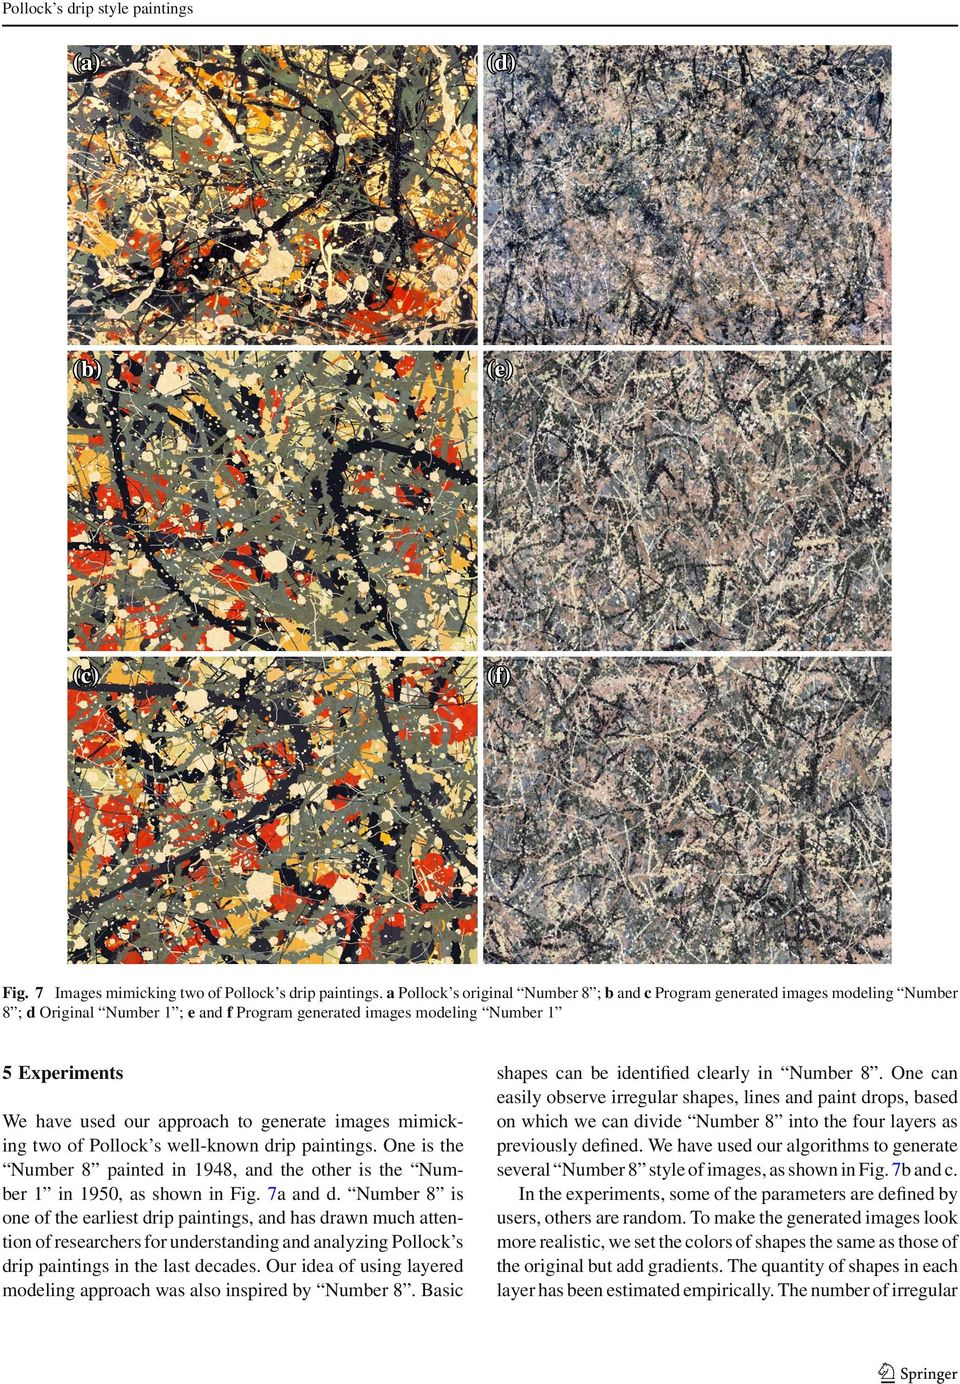 to generate images mimicking two of Pollock s well-known drip paintings. One is the Number 8 painted in 1948, and the other is the Number 1 in 1950, as shown in Fig. 7a and d.